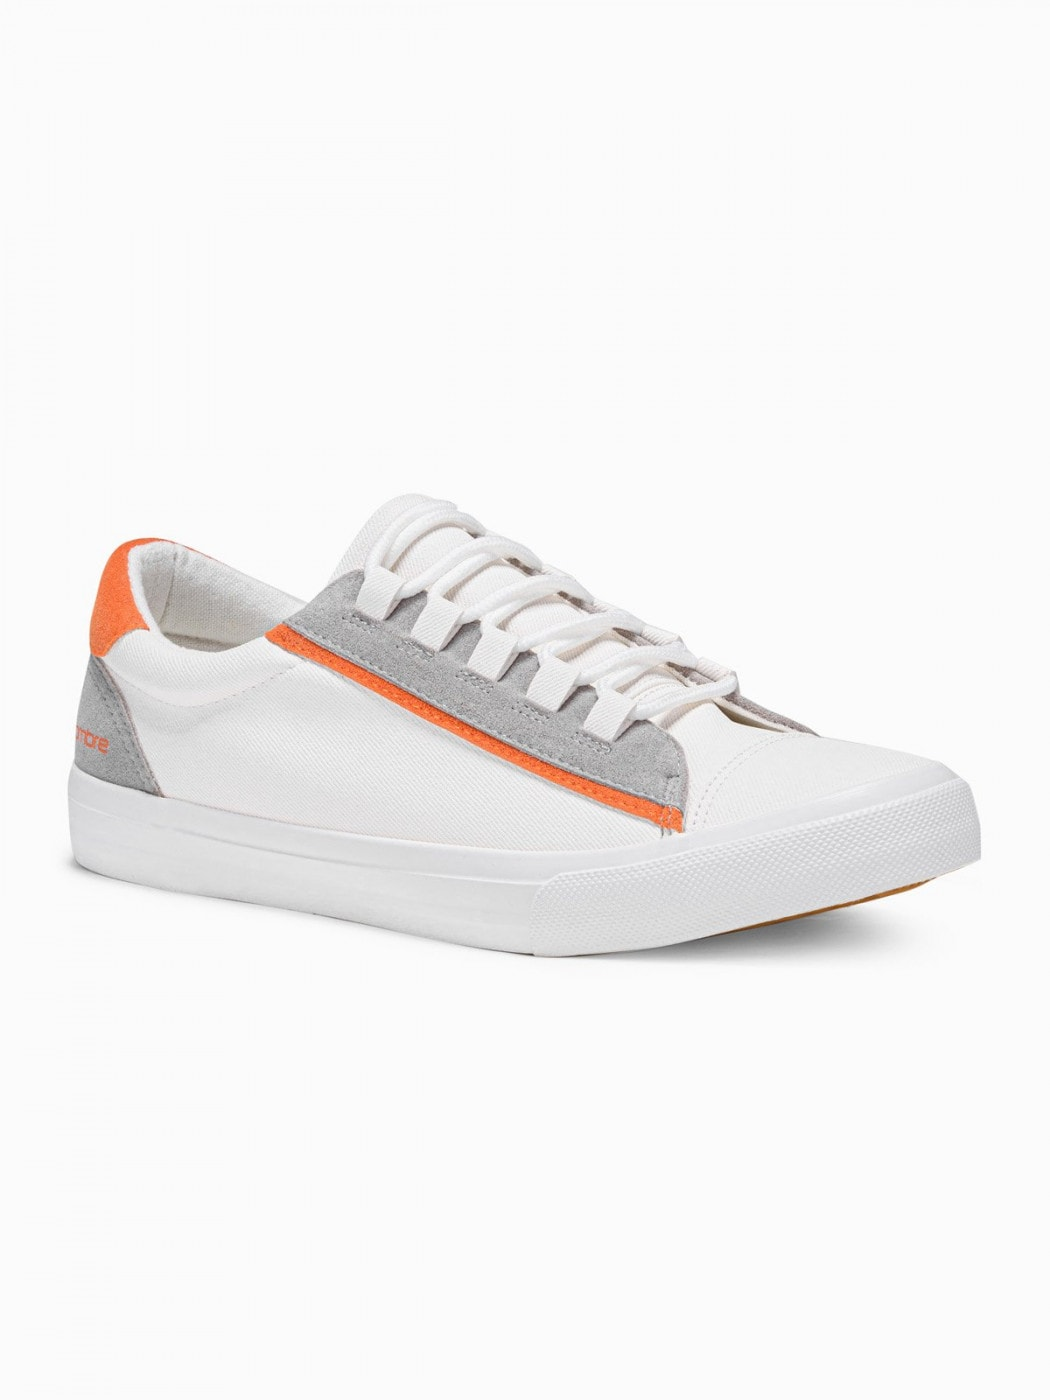 Ombre Clothing Men's high-top trainers T346